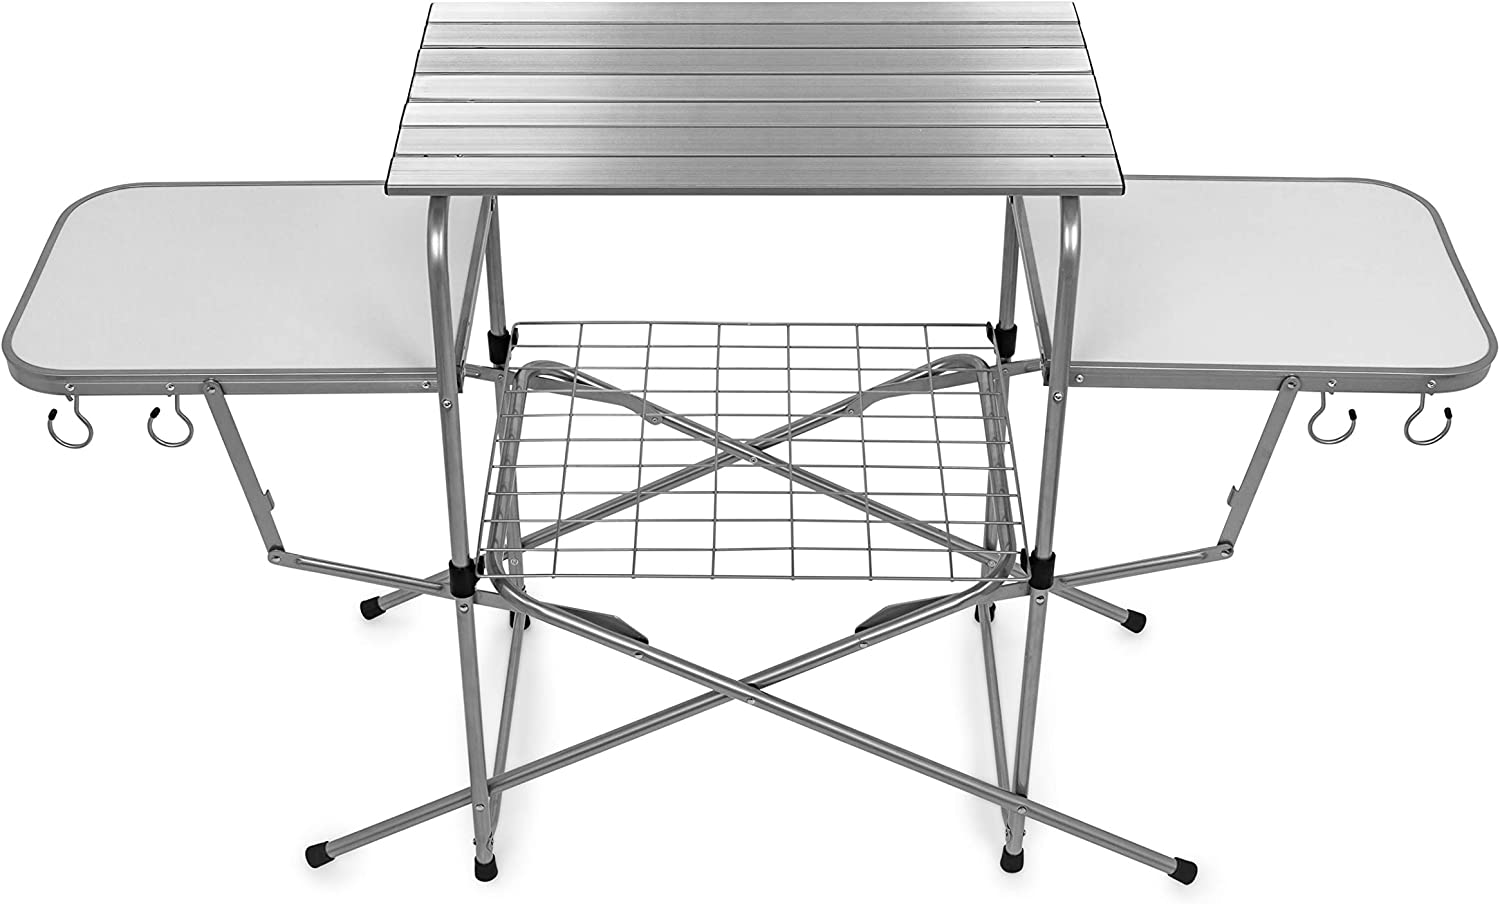 Amazon Com Camco Deluxe Folding Grill Table Great For Picnics Tailgating Camping Rving And Backyards Quick Set Up And Folds Down To Only 6 Inches Tall For Convenient Storage 57293 Automotive